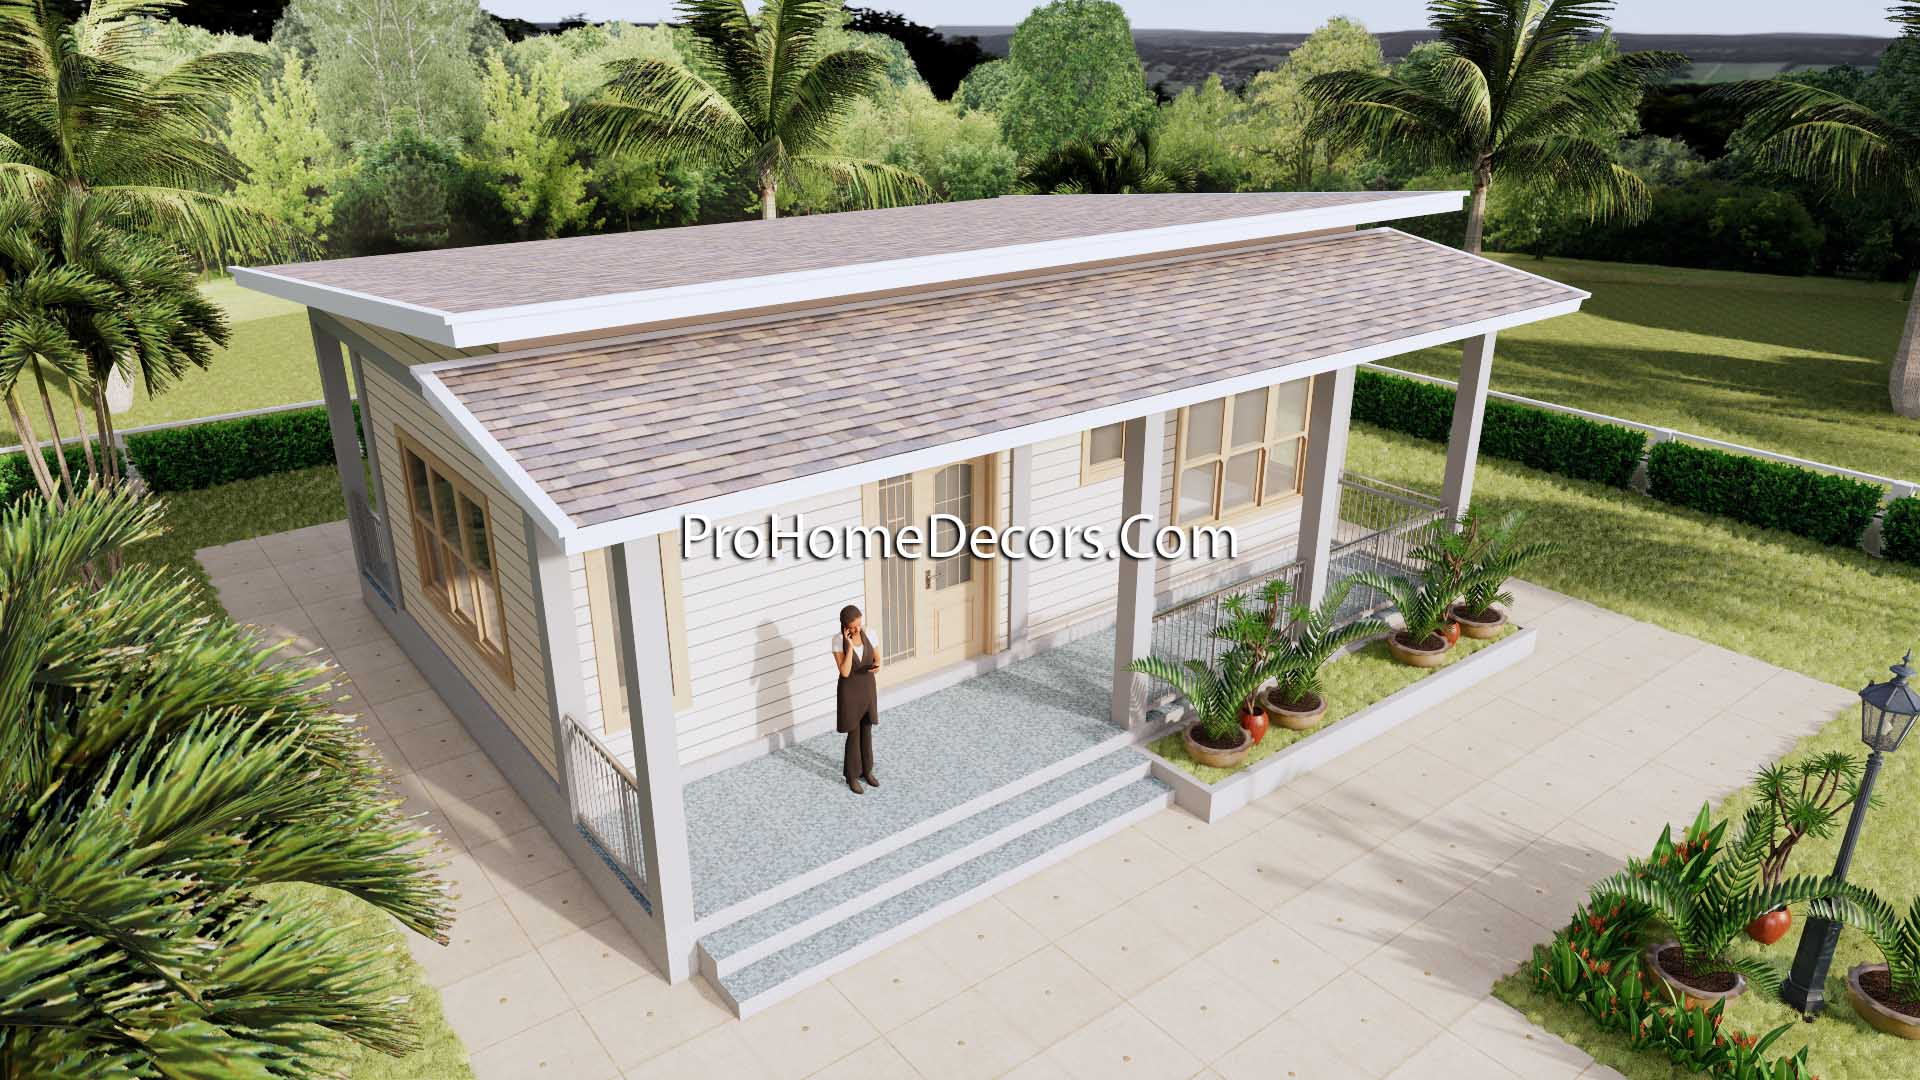 House Design Plans 32x16 Shed Roof 1 Bed PDF Plan 3